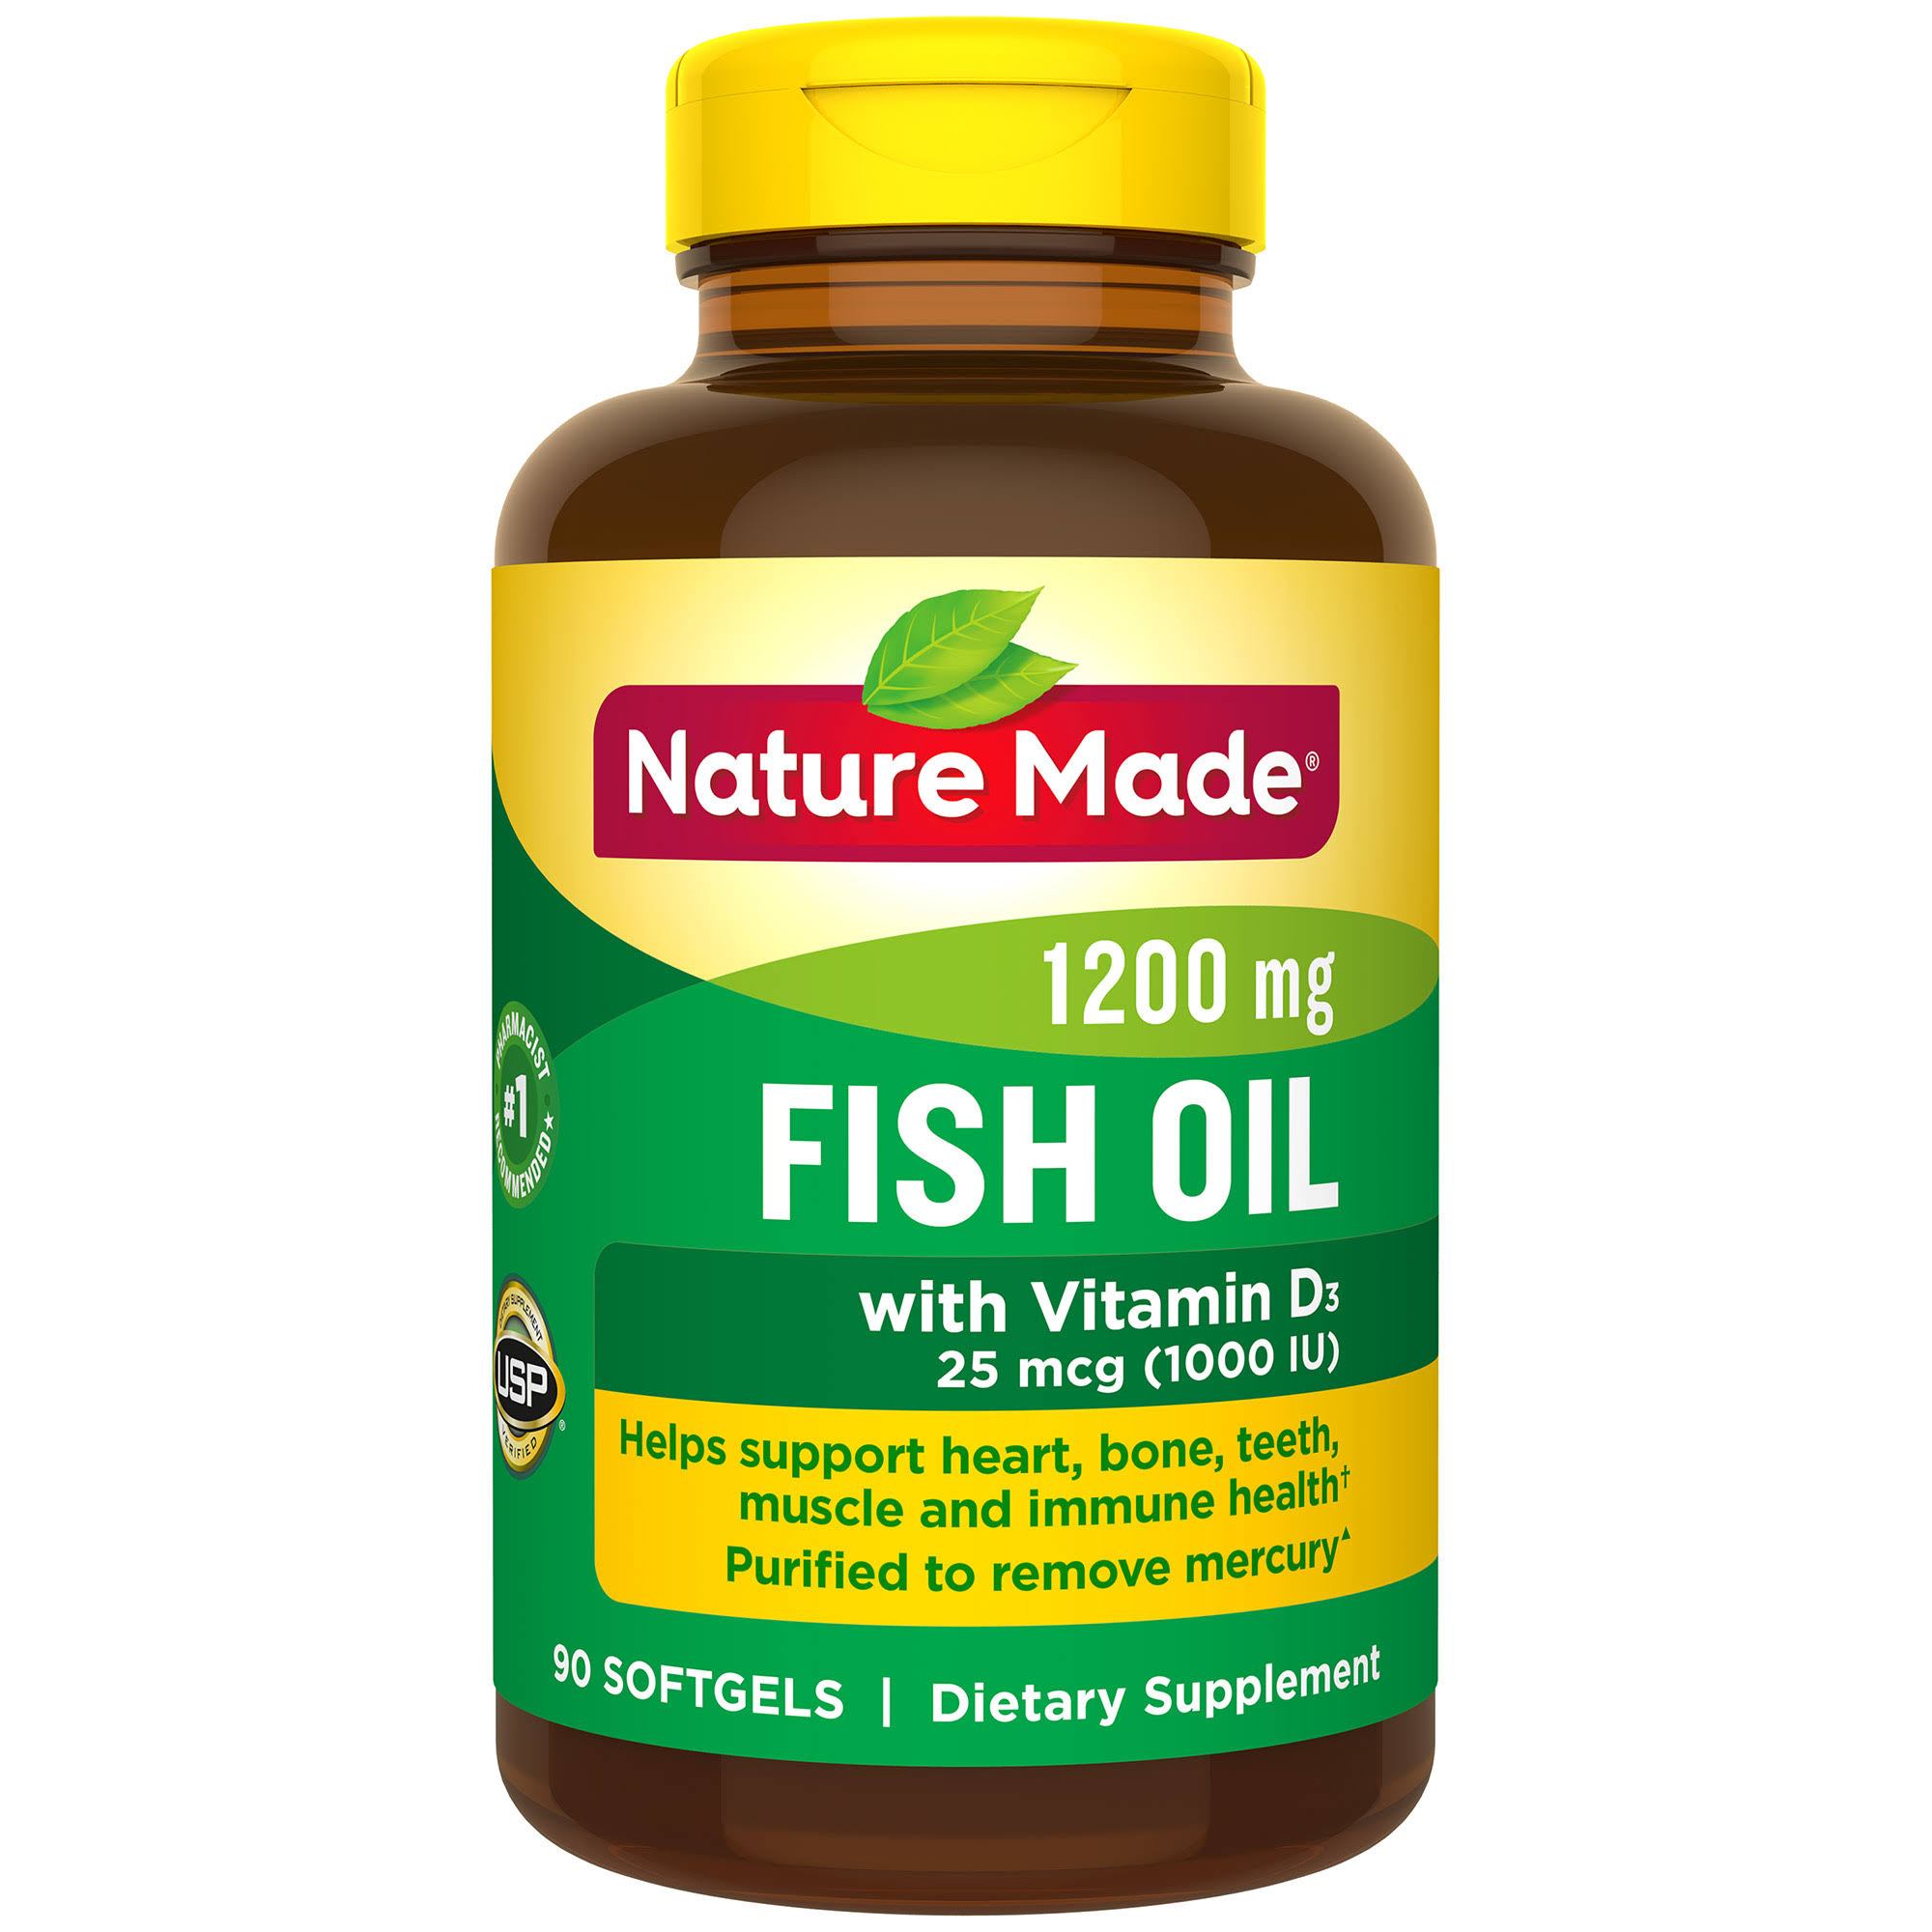 Nature Made Fish Oil Vitamin D Supplement - 90 Liquid Softgels